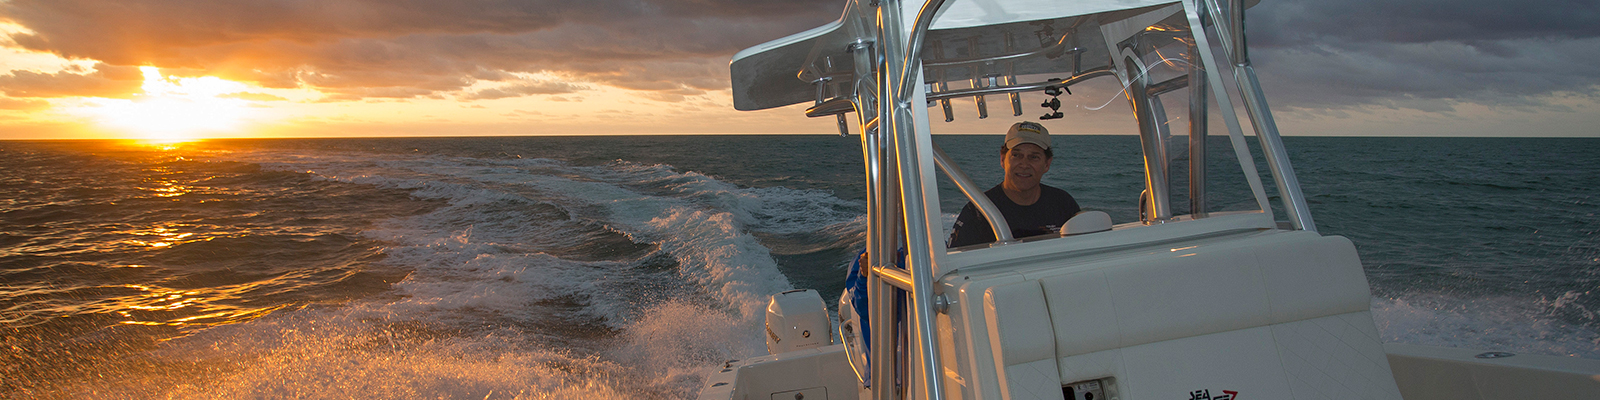 Simrad-Center-Console_14736_1600x400.jpg